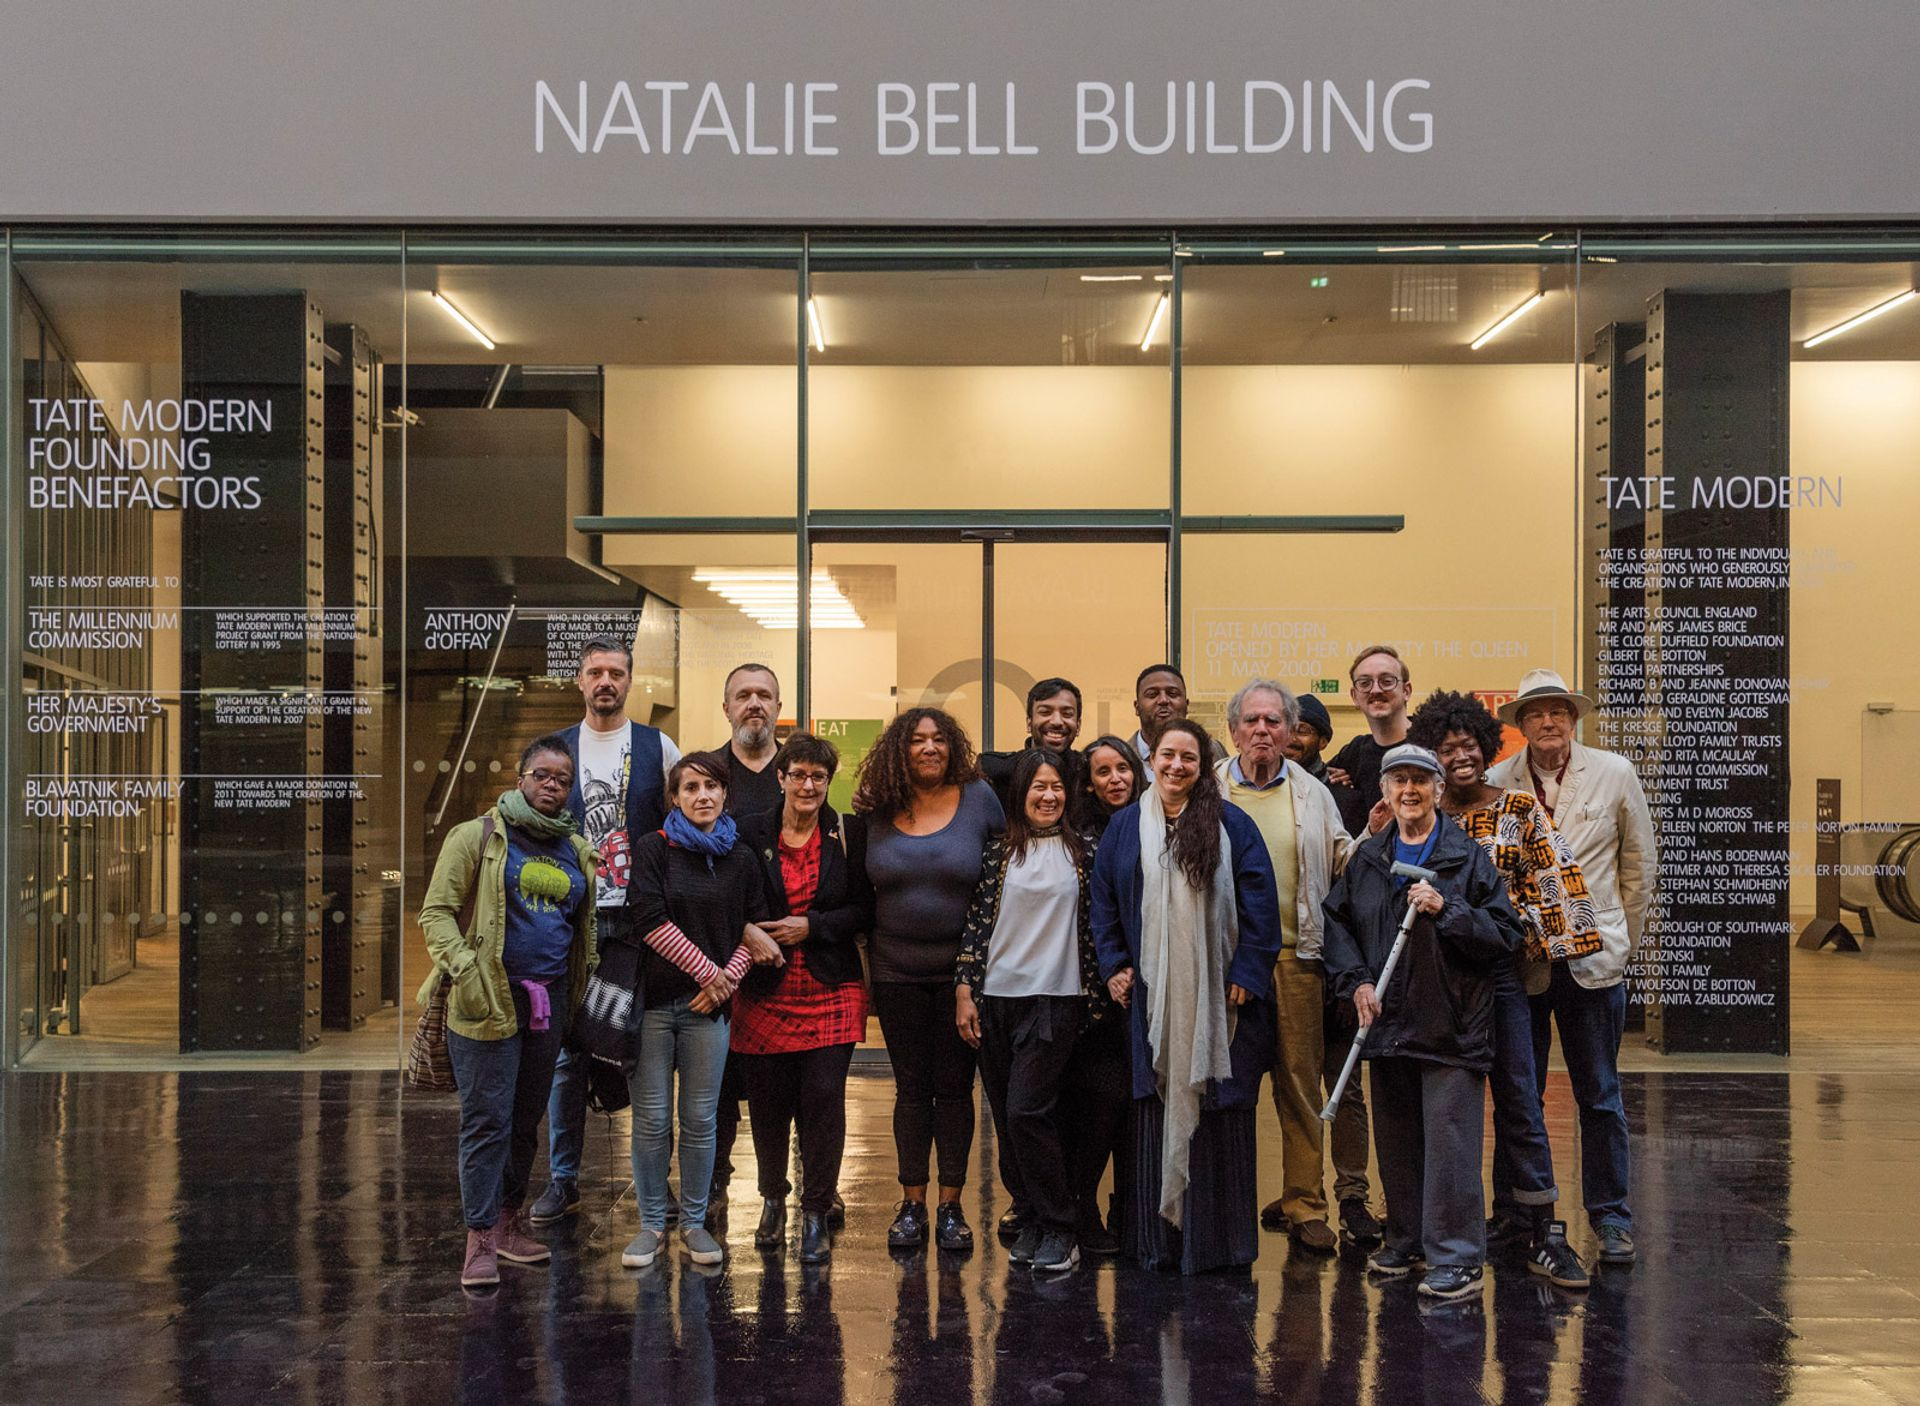 The Cuban artist Tania Bruguera renamed Tate Modern's main building after local activist Natalie Bell as part of her 2018 Turbine Hall commission © Tate